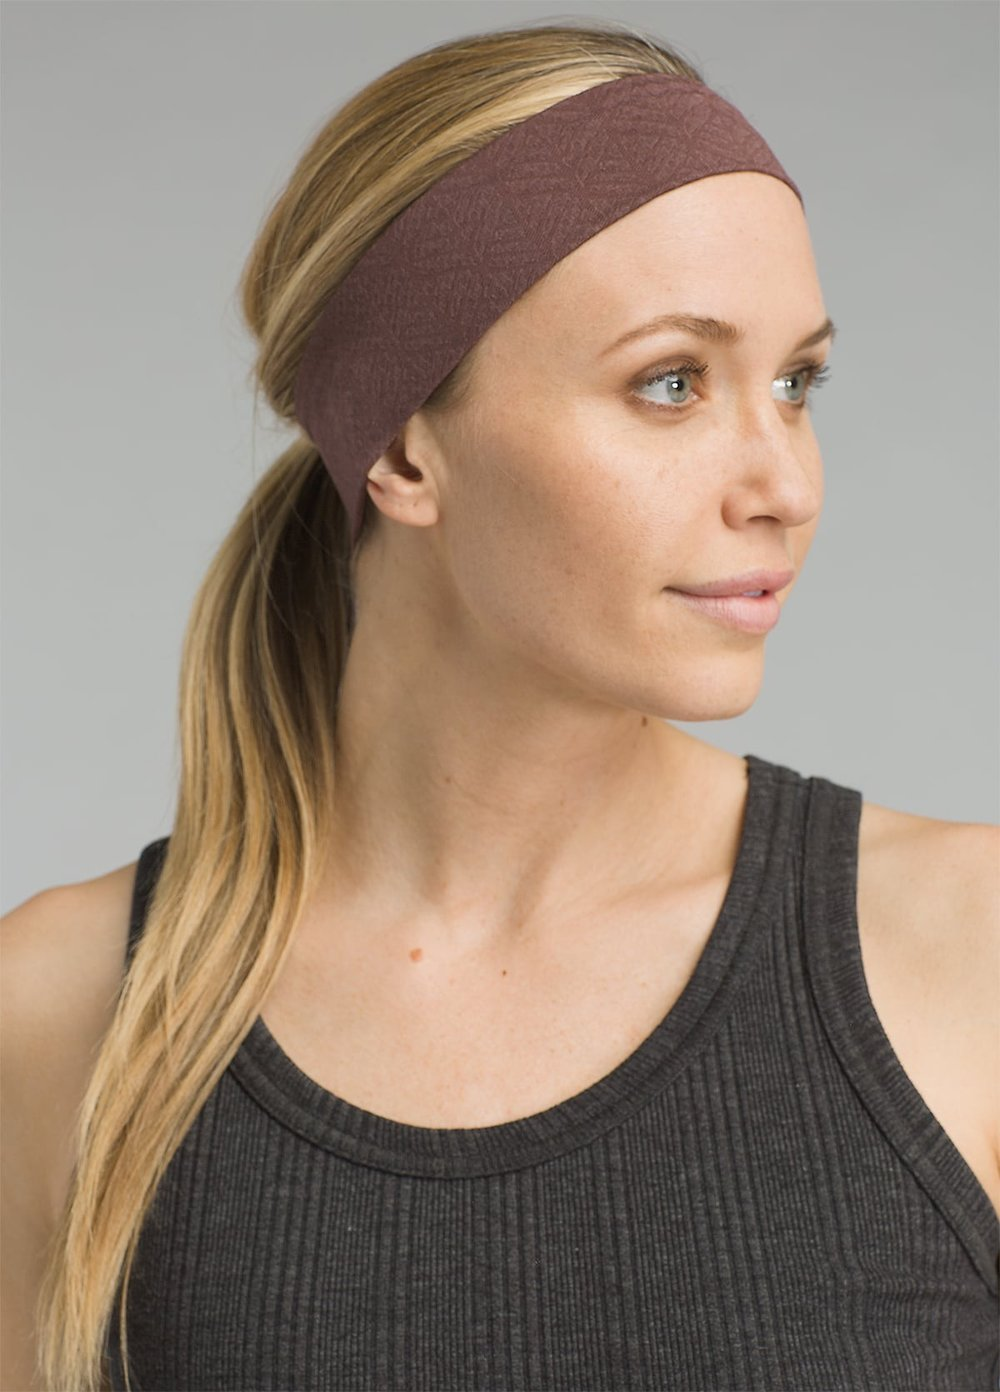 Jacquard Headband - THE JACQUARD HEADBAND FEATURES ELASTIC AT THE INSIDE FOR A STAY-PUT FIT, AND IS 2